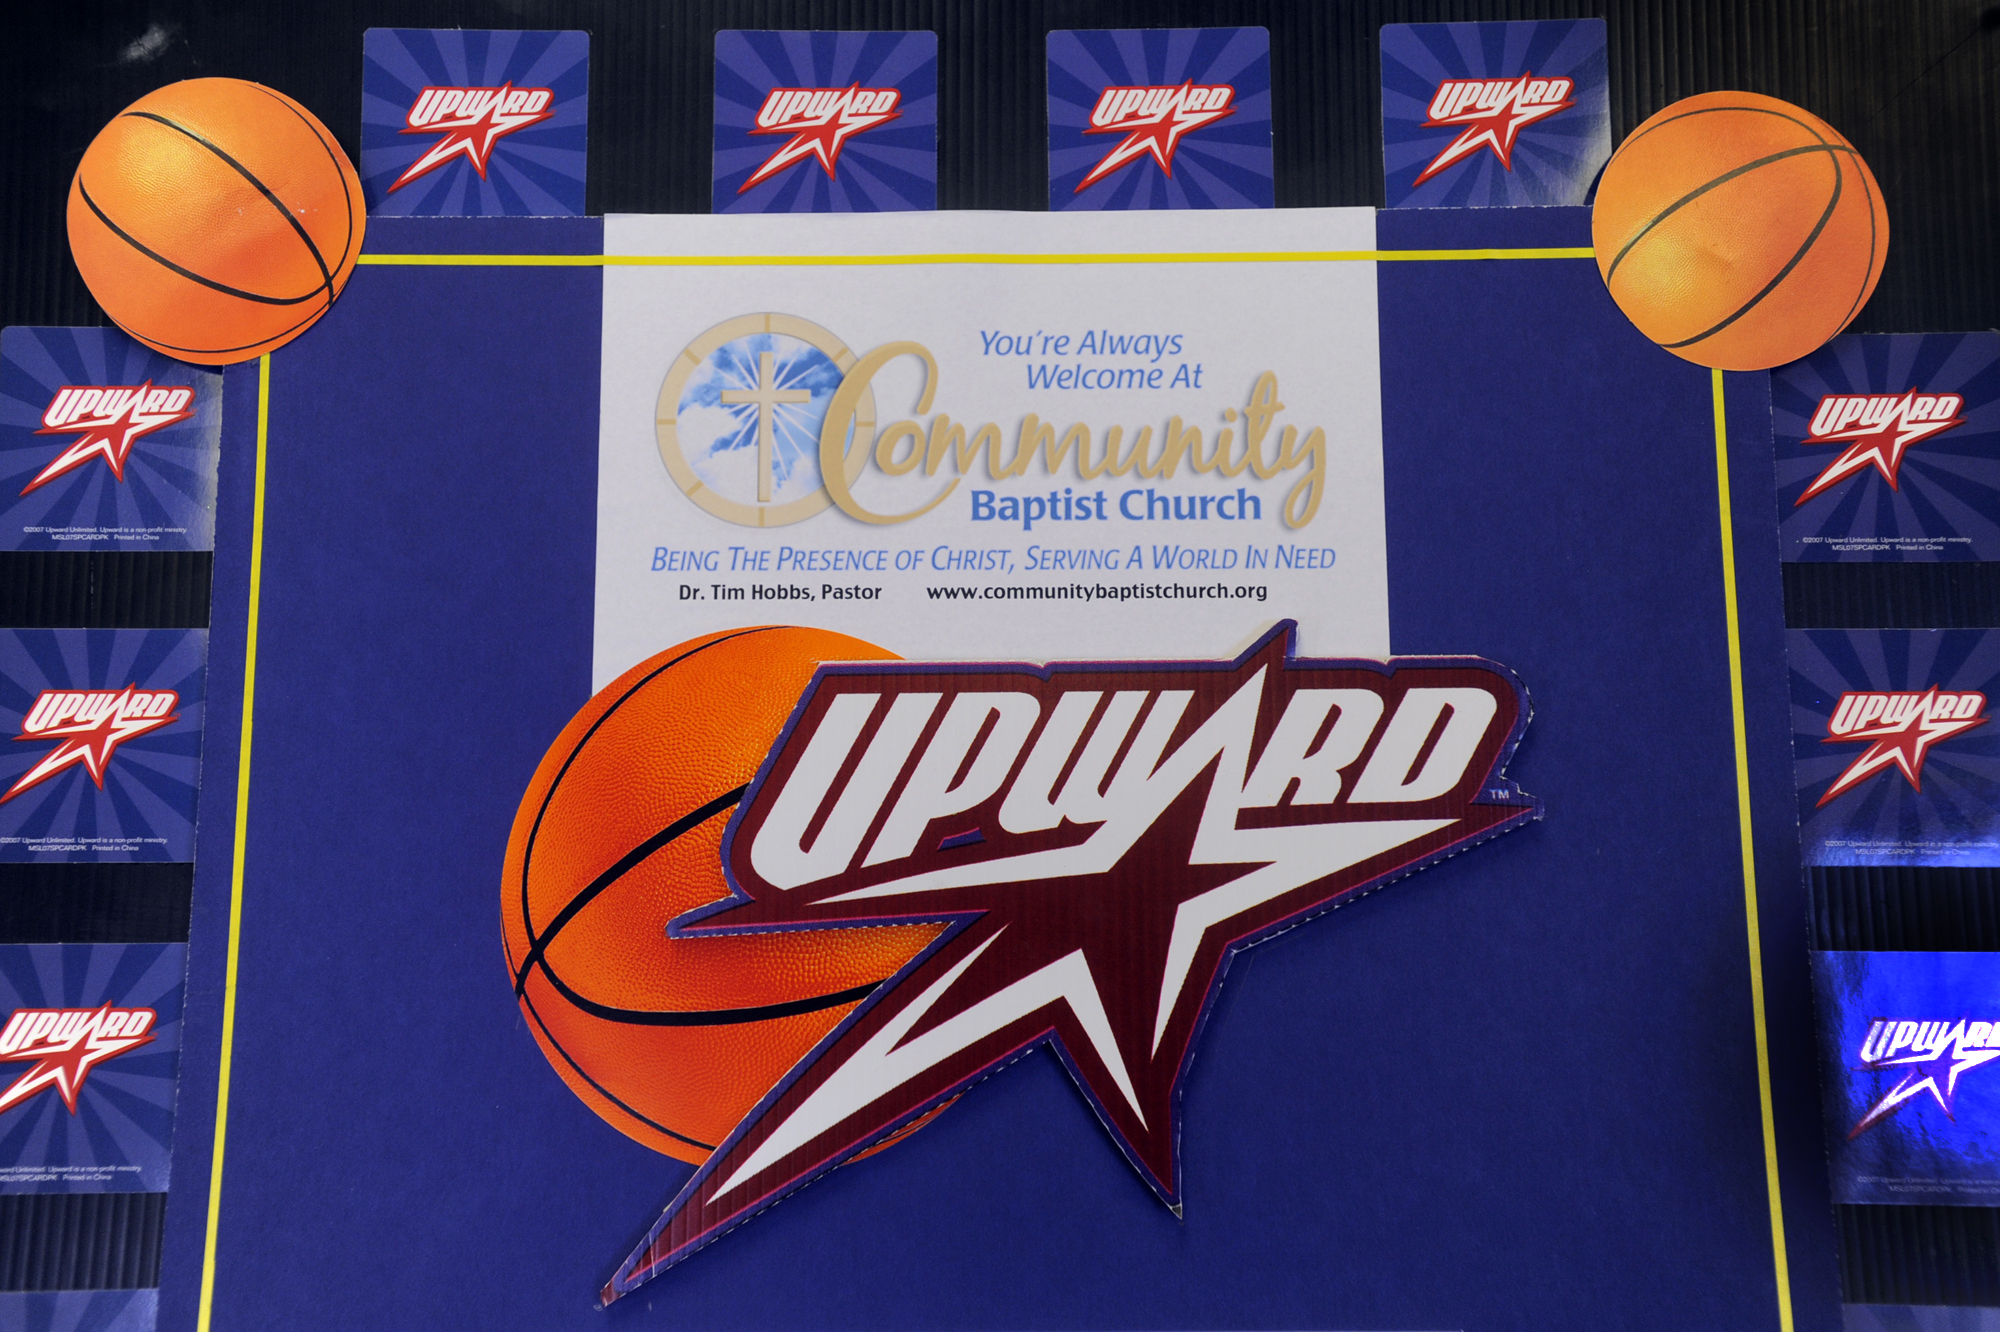 Upward Basketball and Cheer